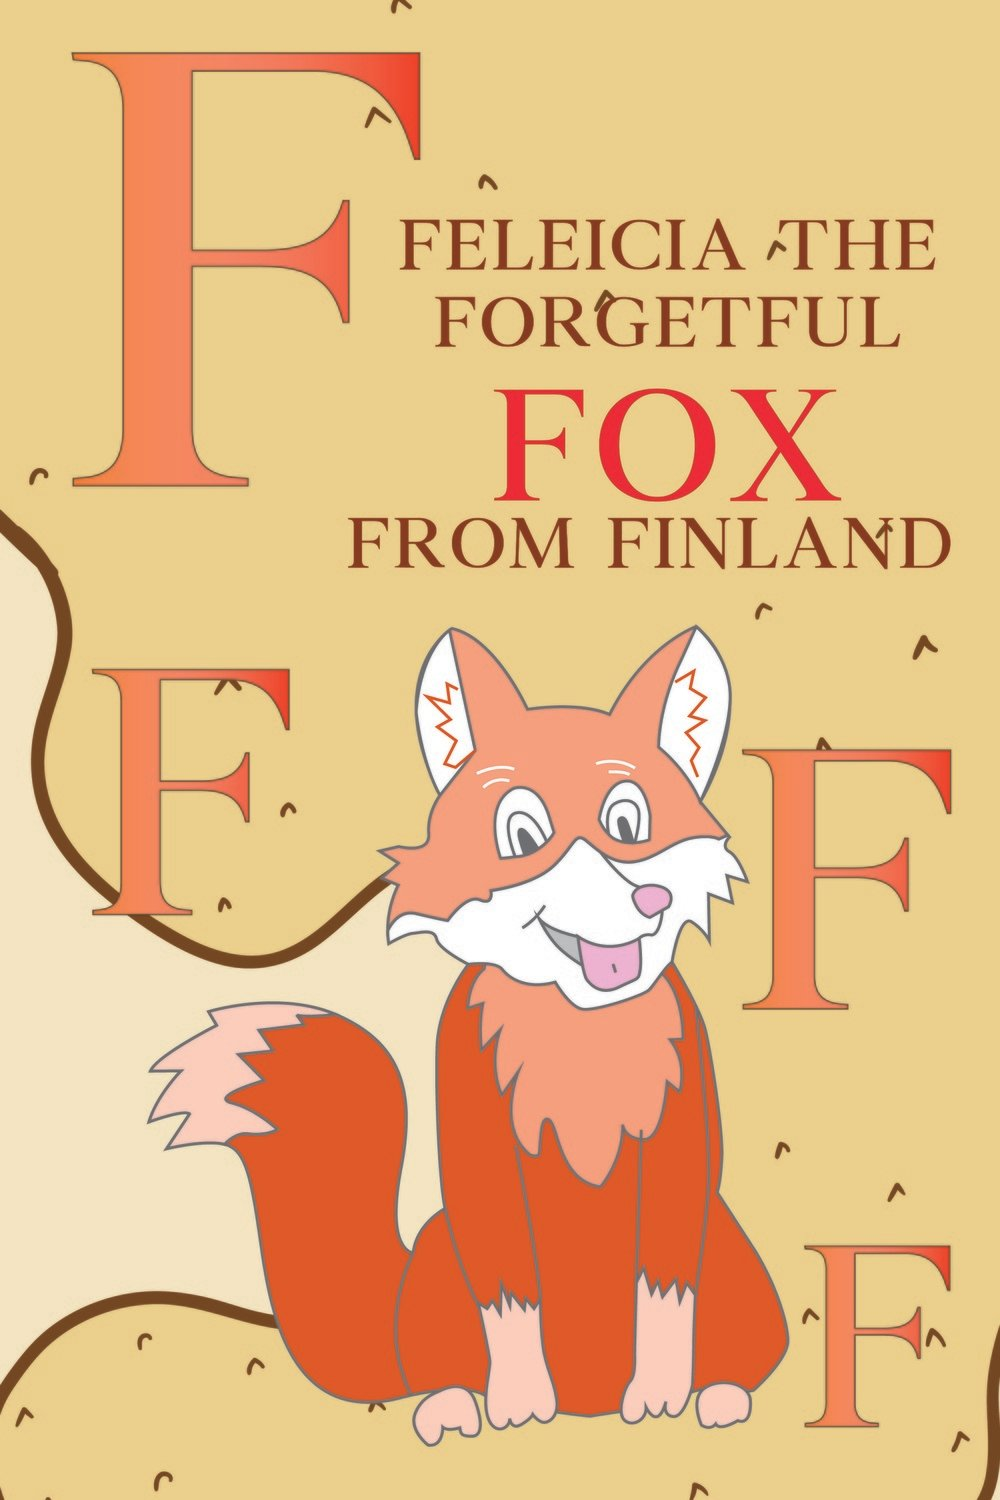 Feleicia The Forgetful FOX from FINLAND Poster